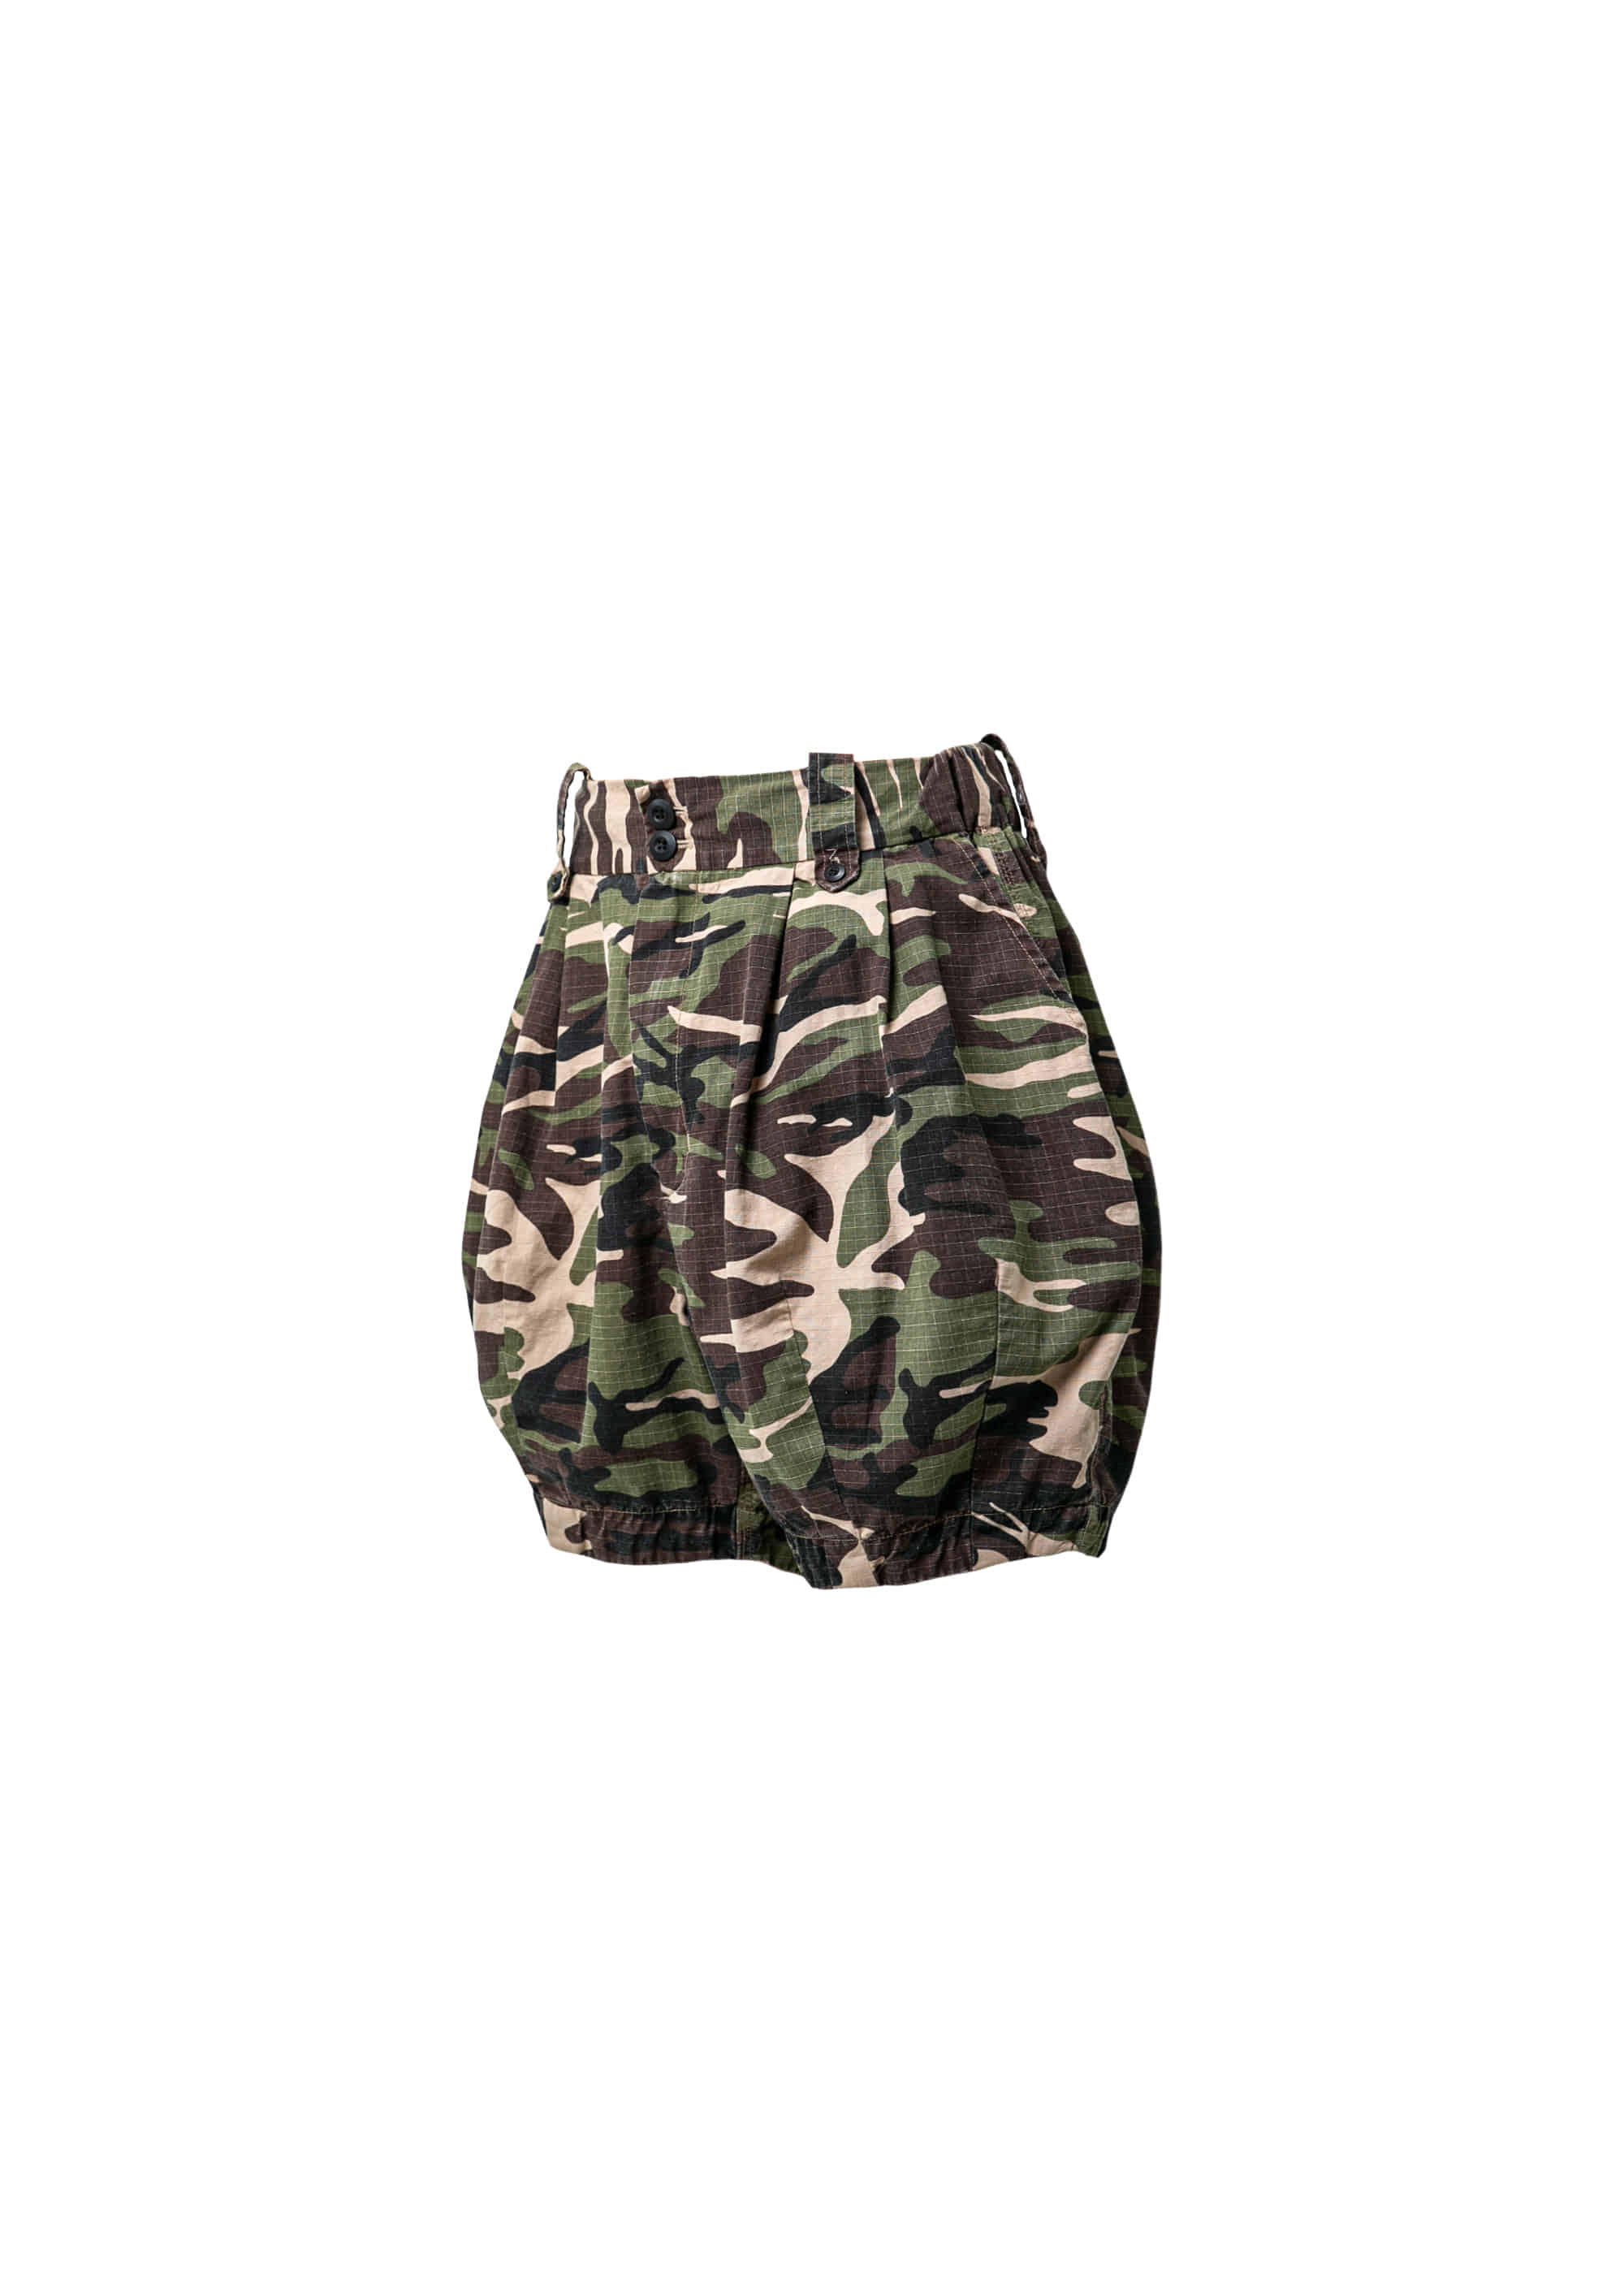 [AG X GR] Woodland Camo Balloon Shorts